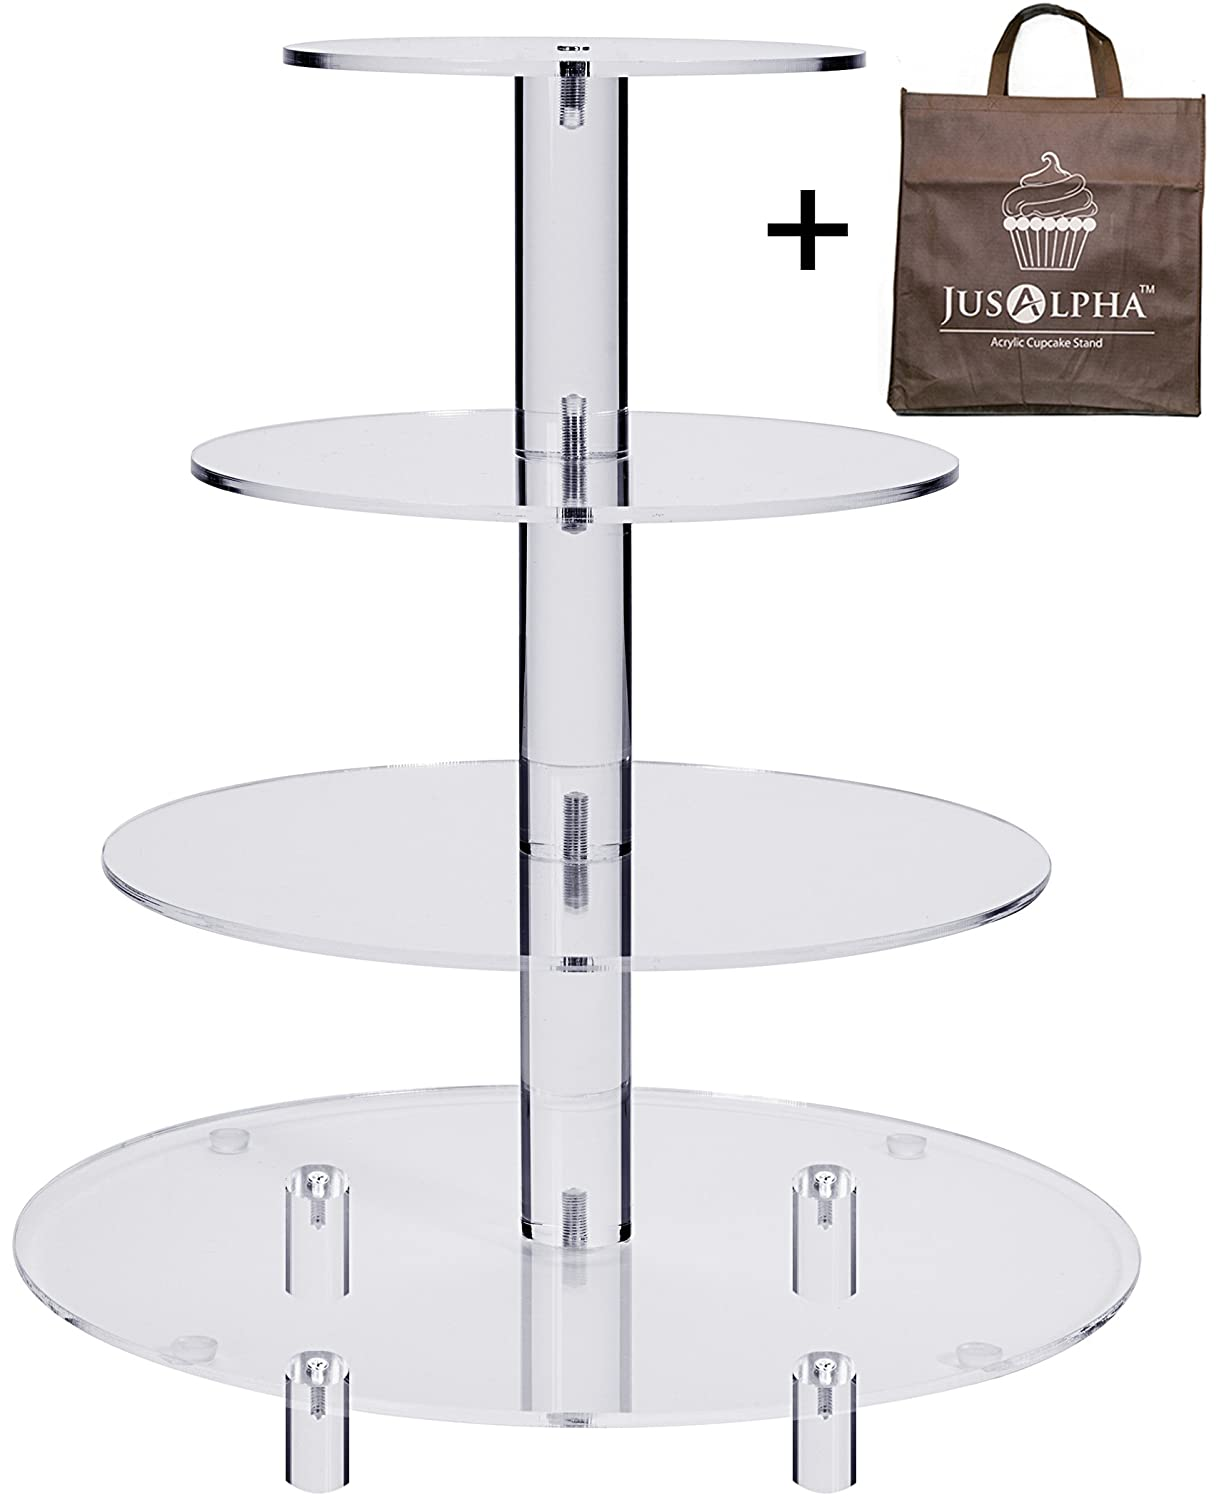 Jusalpha 4 Tier Acrylic Glass Round Cake Stand-cupcake Stand- Dessert Stand-tea Party Serving Platter for Wedding Party(4TR) (With Rod Feet)